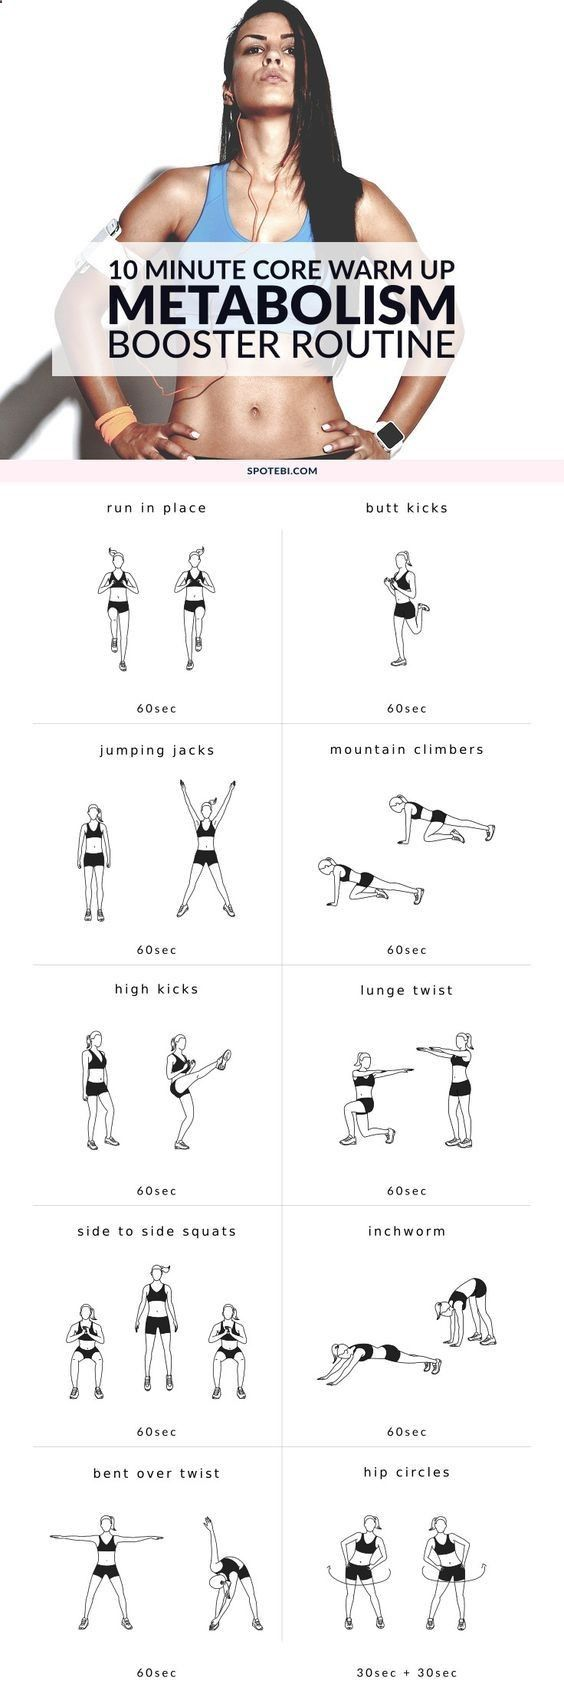 Warm up your abs and lower back with this bodyweight at home core warm up routine. Get your heart pumping and prepare your core for a strengthening workout. www.spotebi.com/...